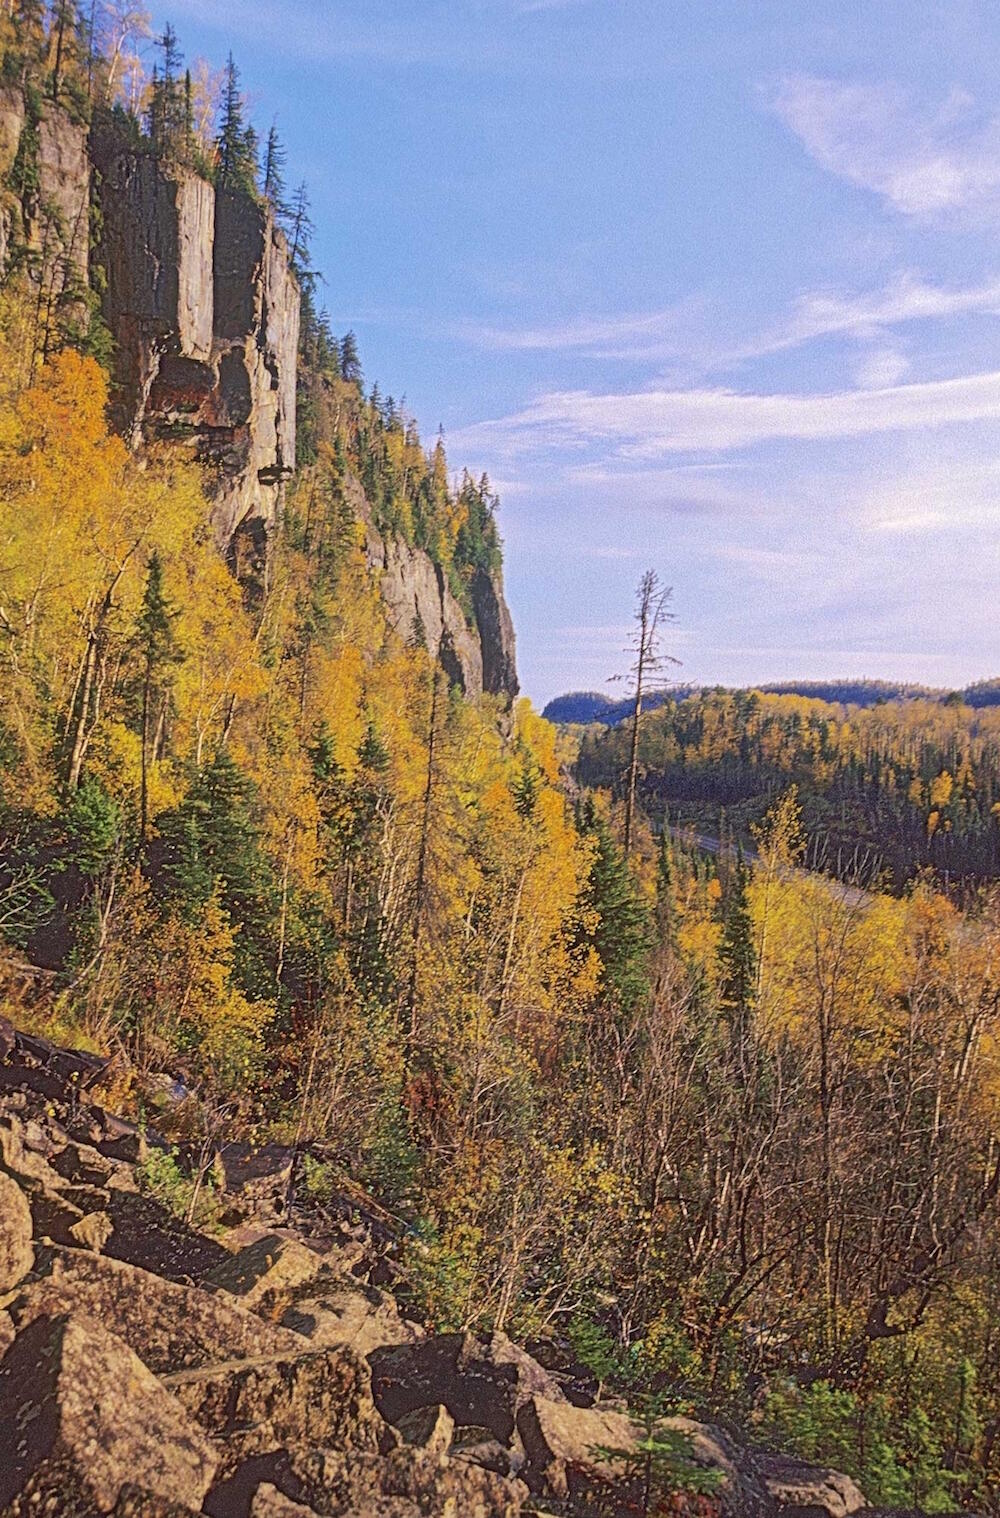 Majestic rock cliffs with boreal forest in fall.